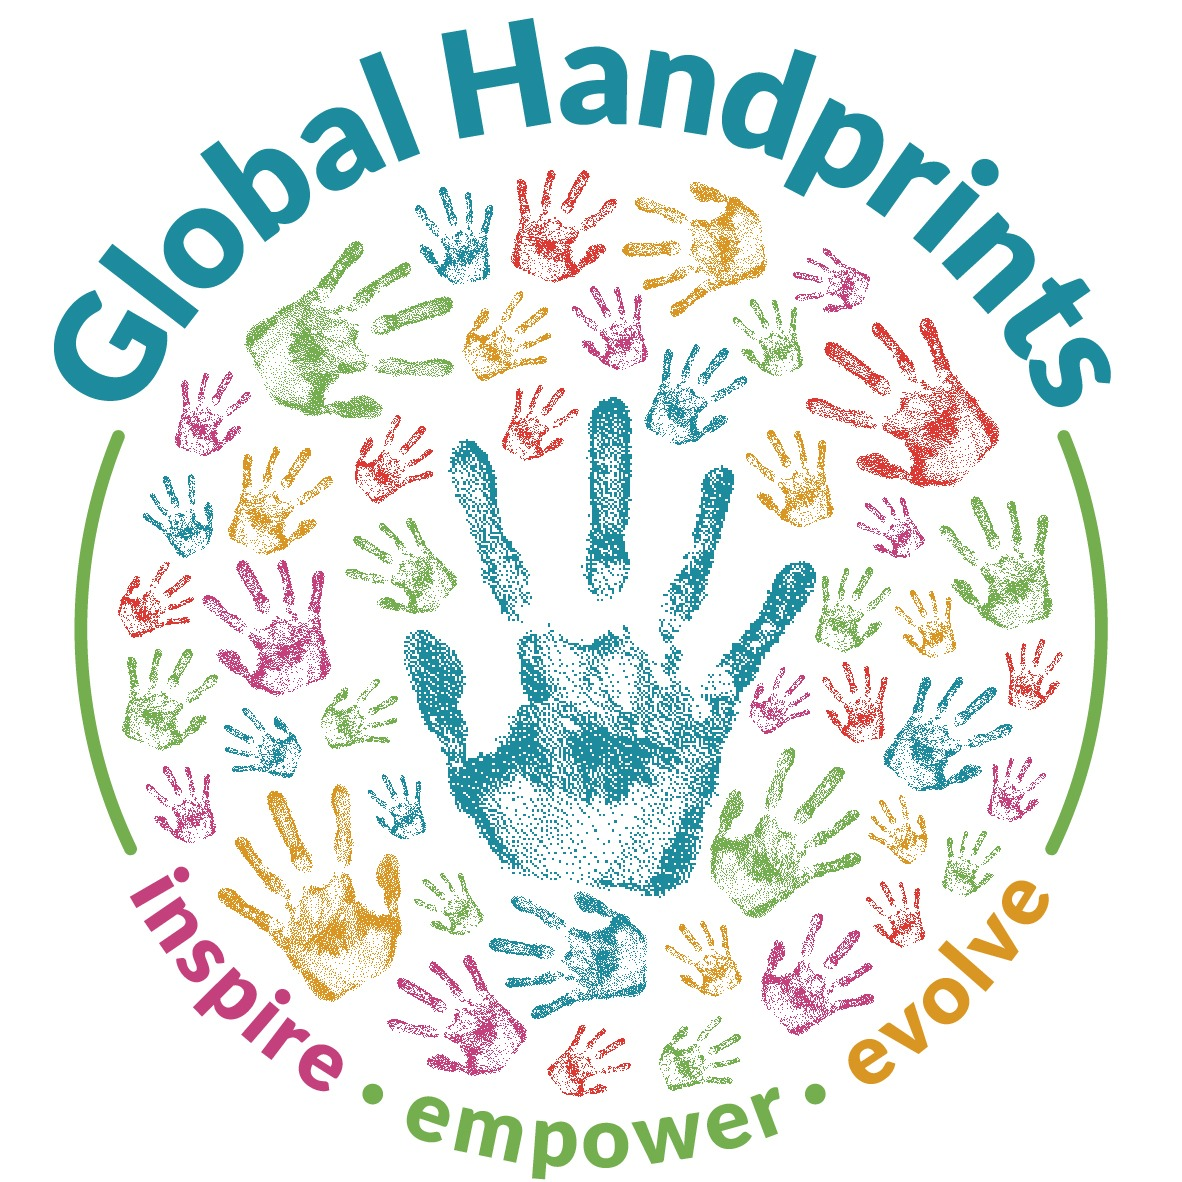 Global Handprints